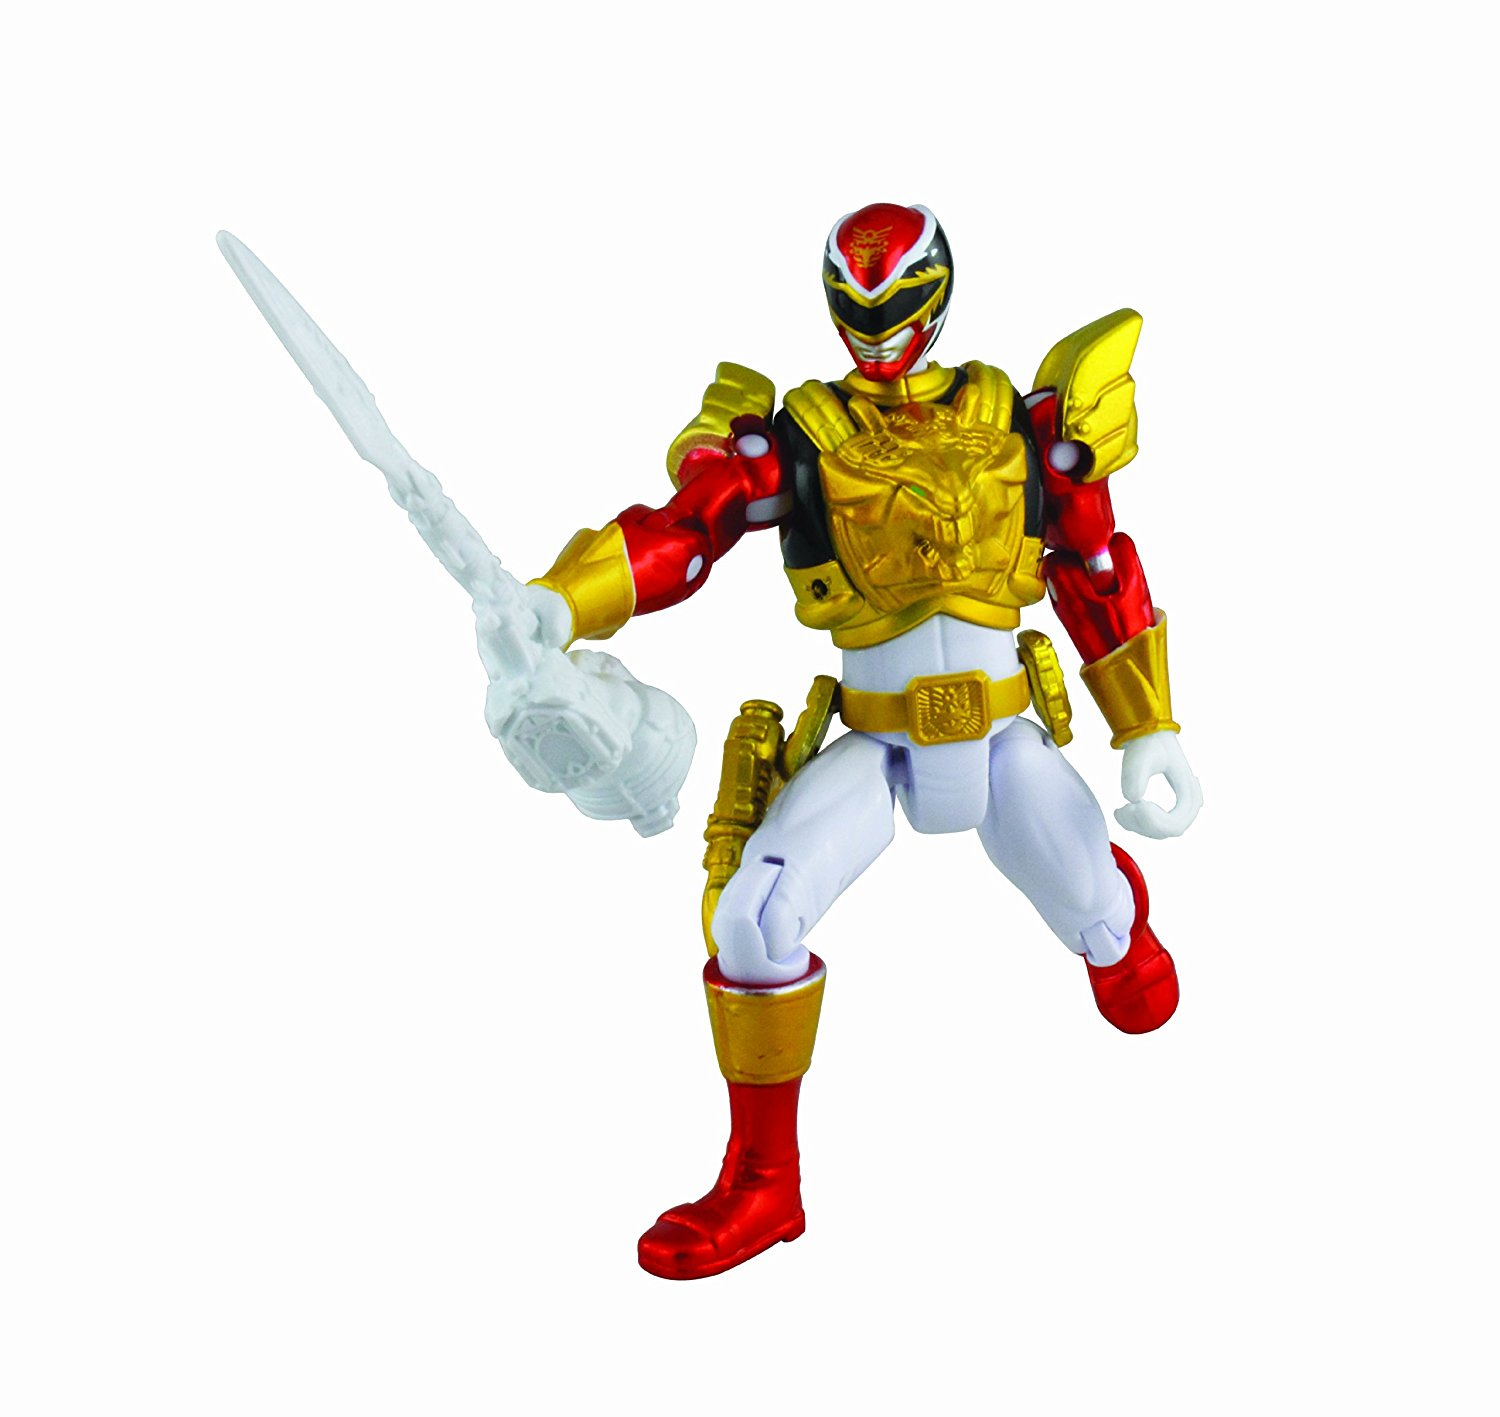 Metallic Force Ultra Action Figure, Red By Power Rangers by